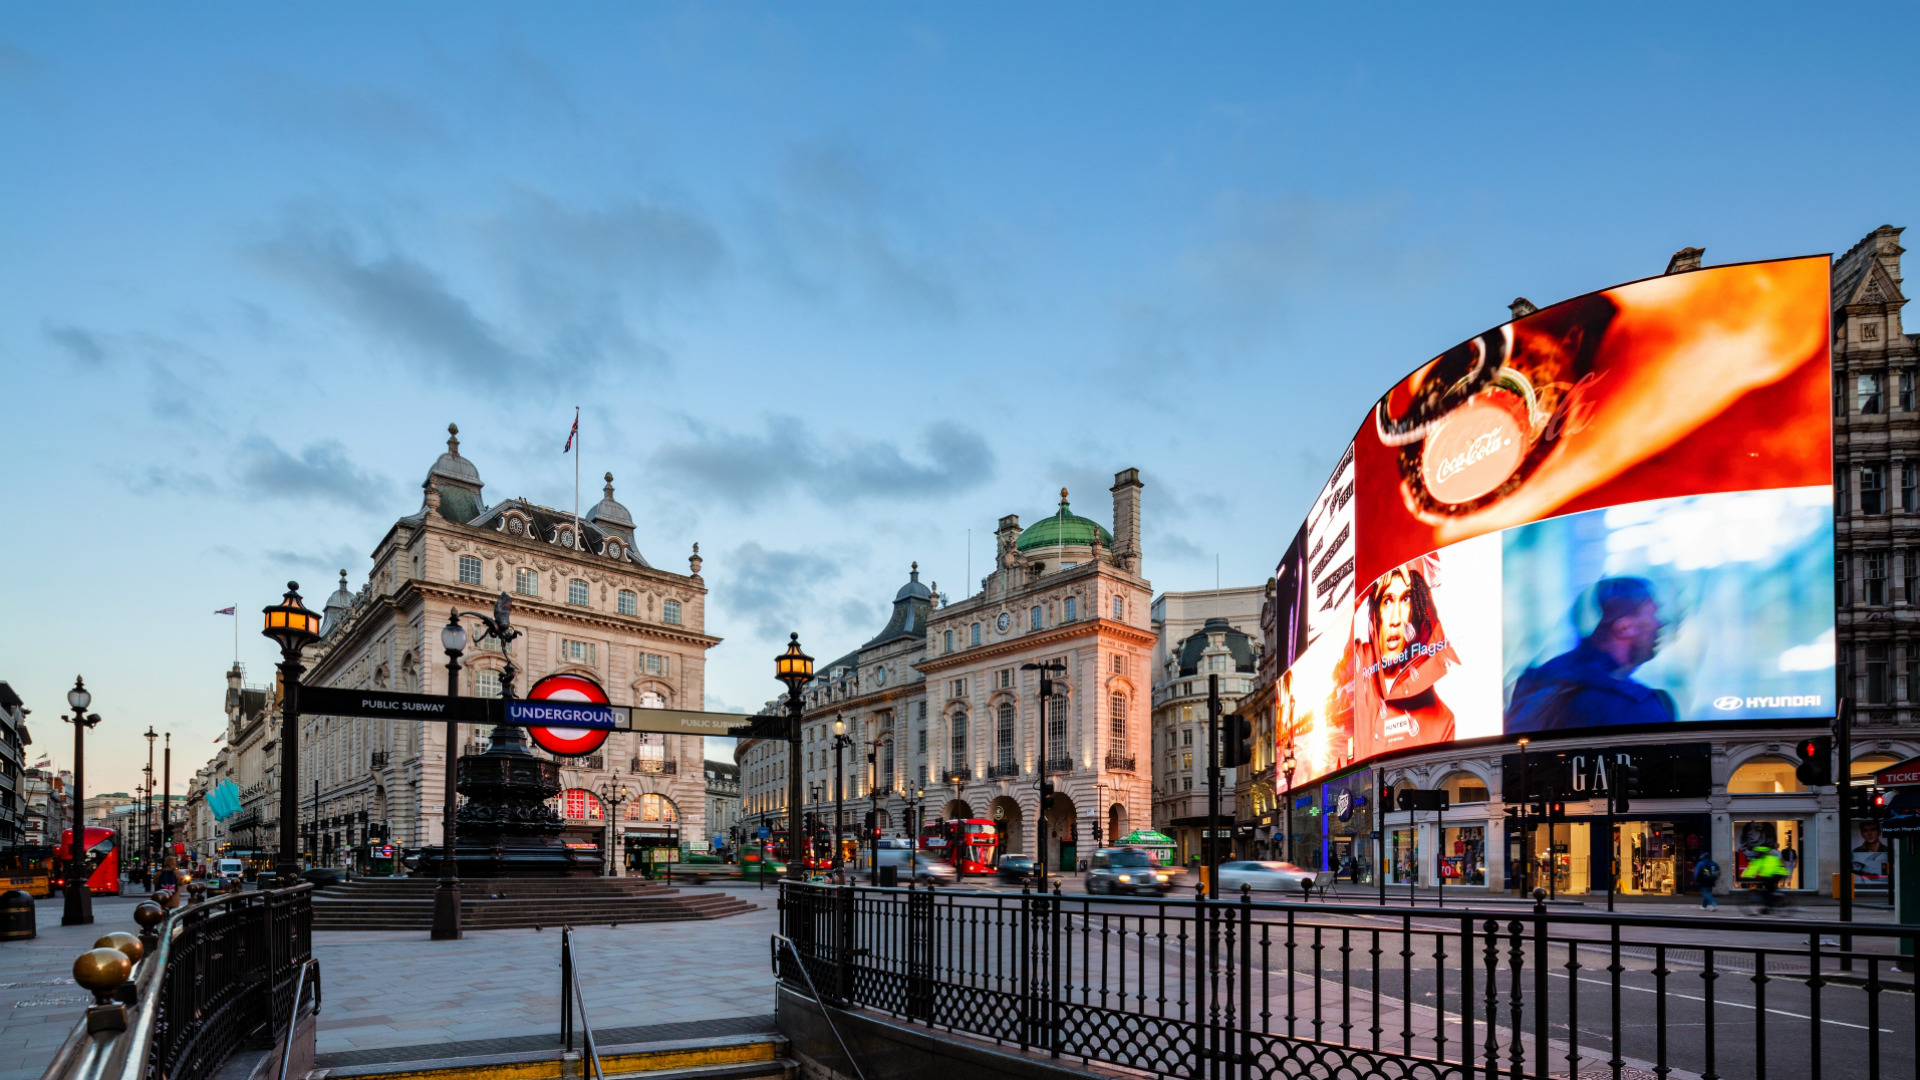 BYD case study, Piccadilly Circus